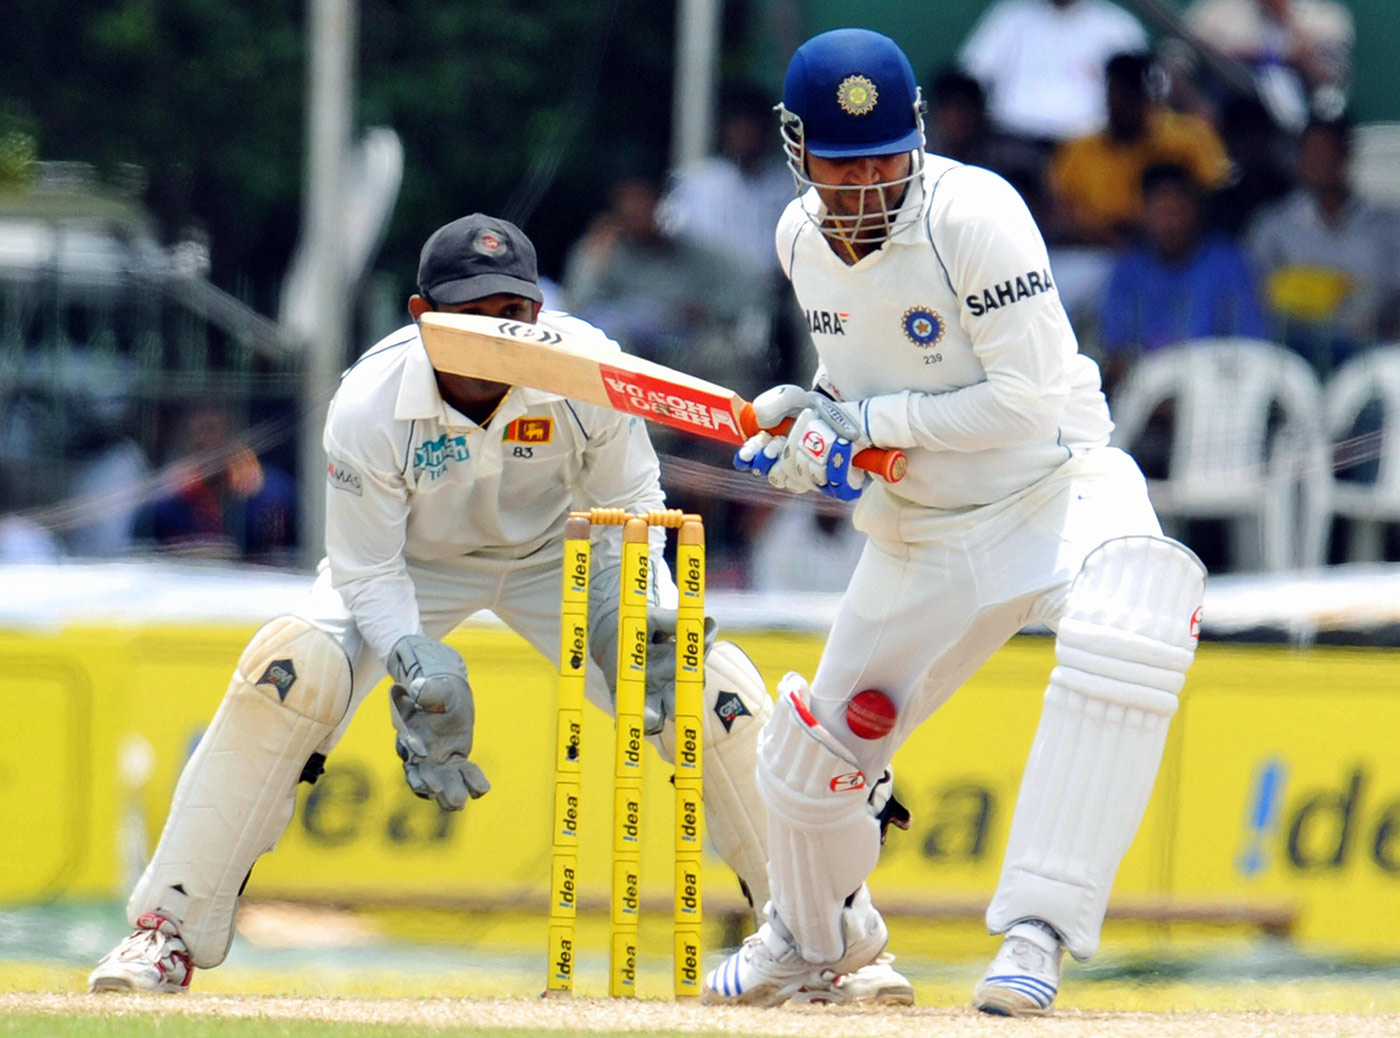 No. 1: the Sehwag lbw in 2008 that became the first decision overturned under the UDRS (as the system was called then)